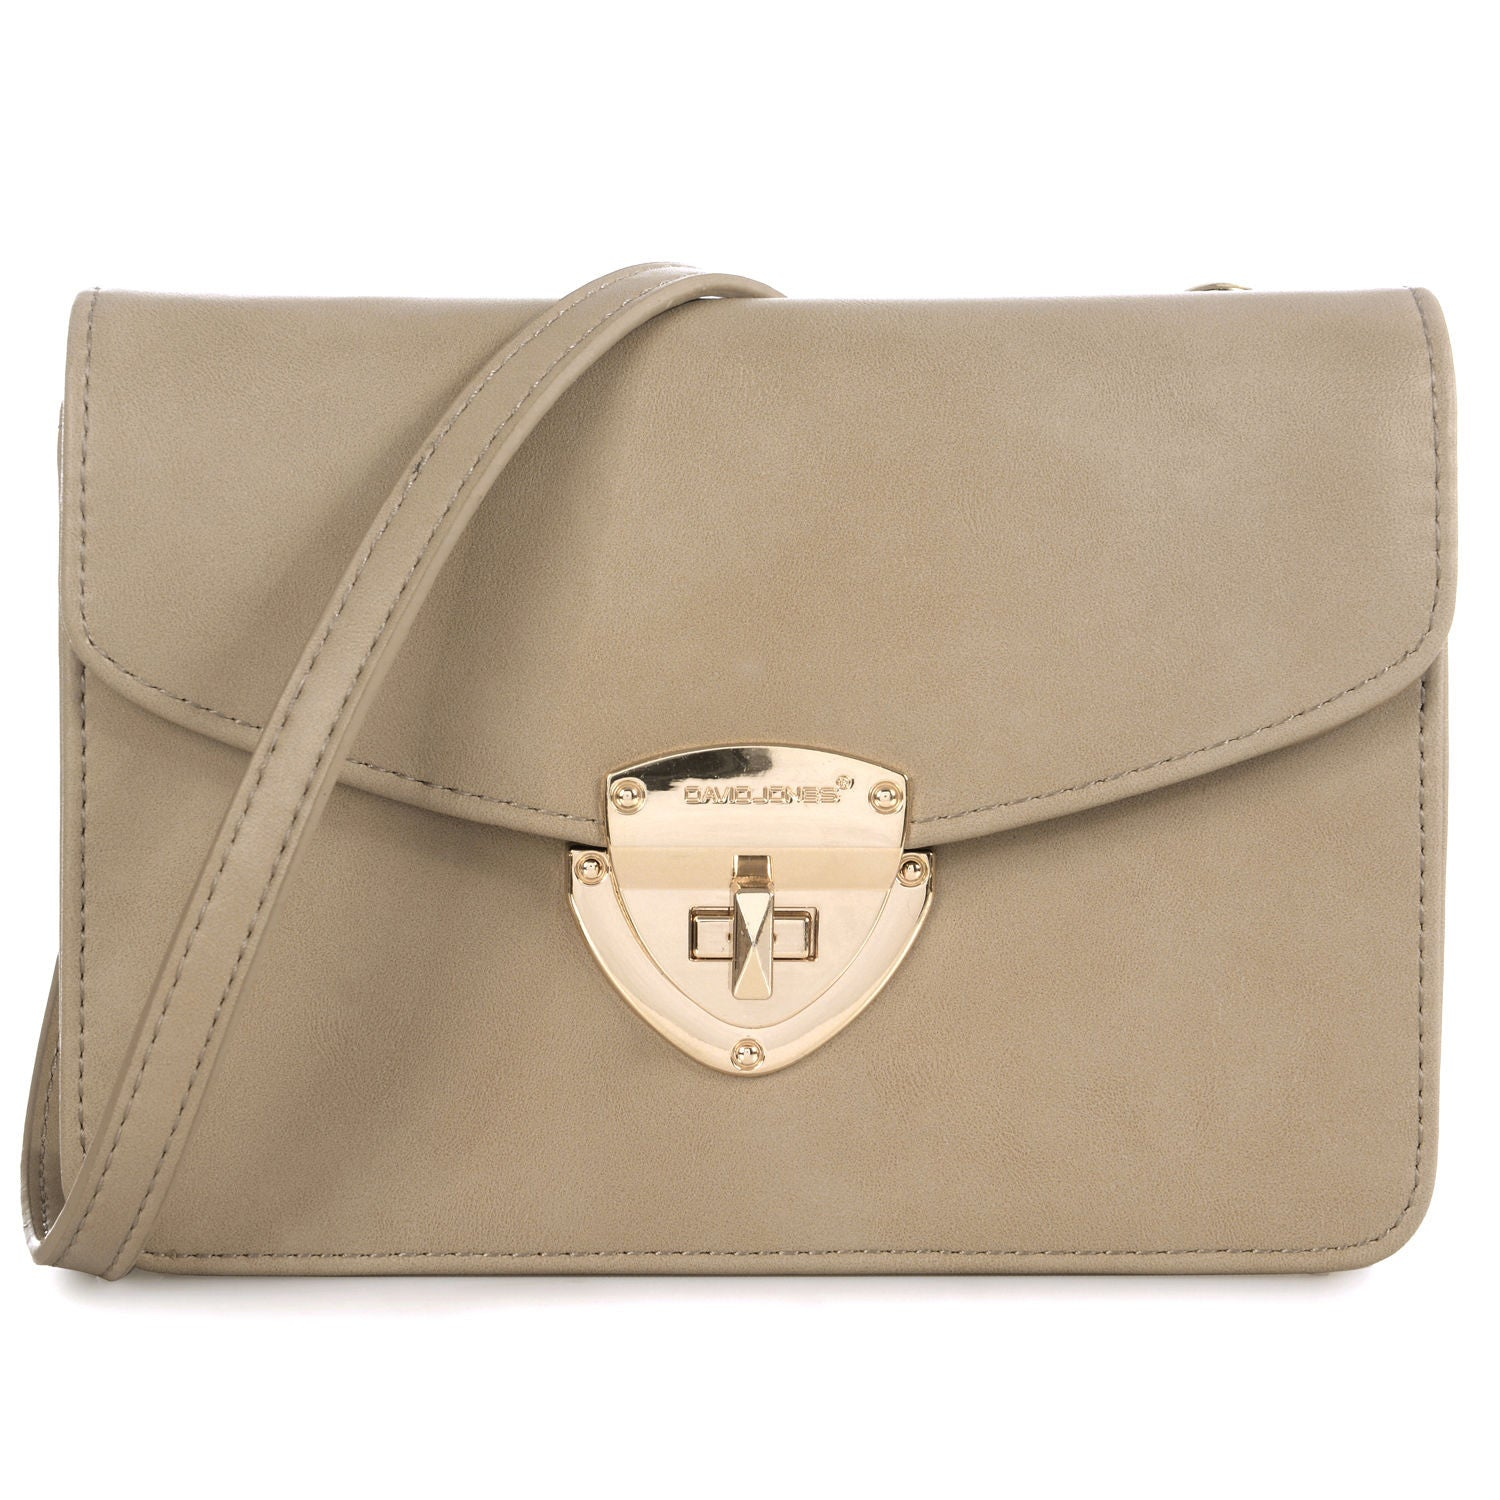 Claudia DJ Purse/Wallet Bag Paris